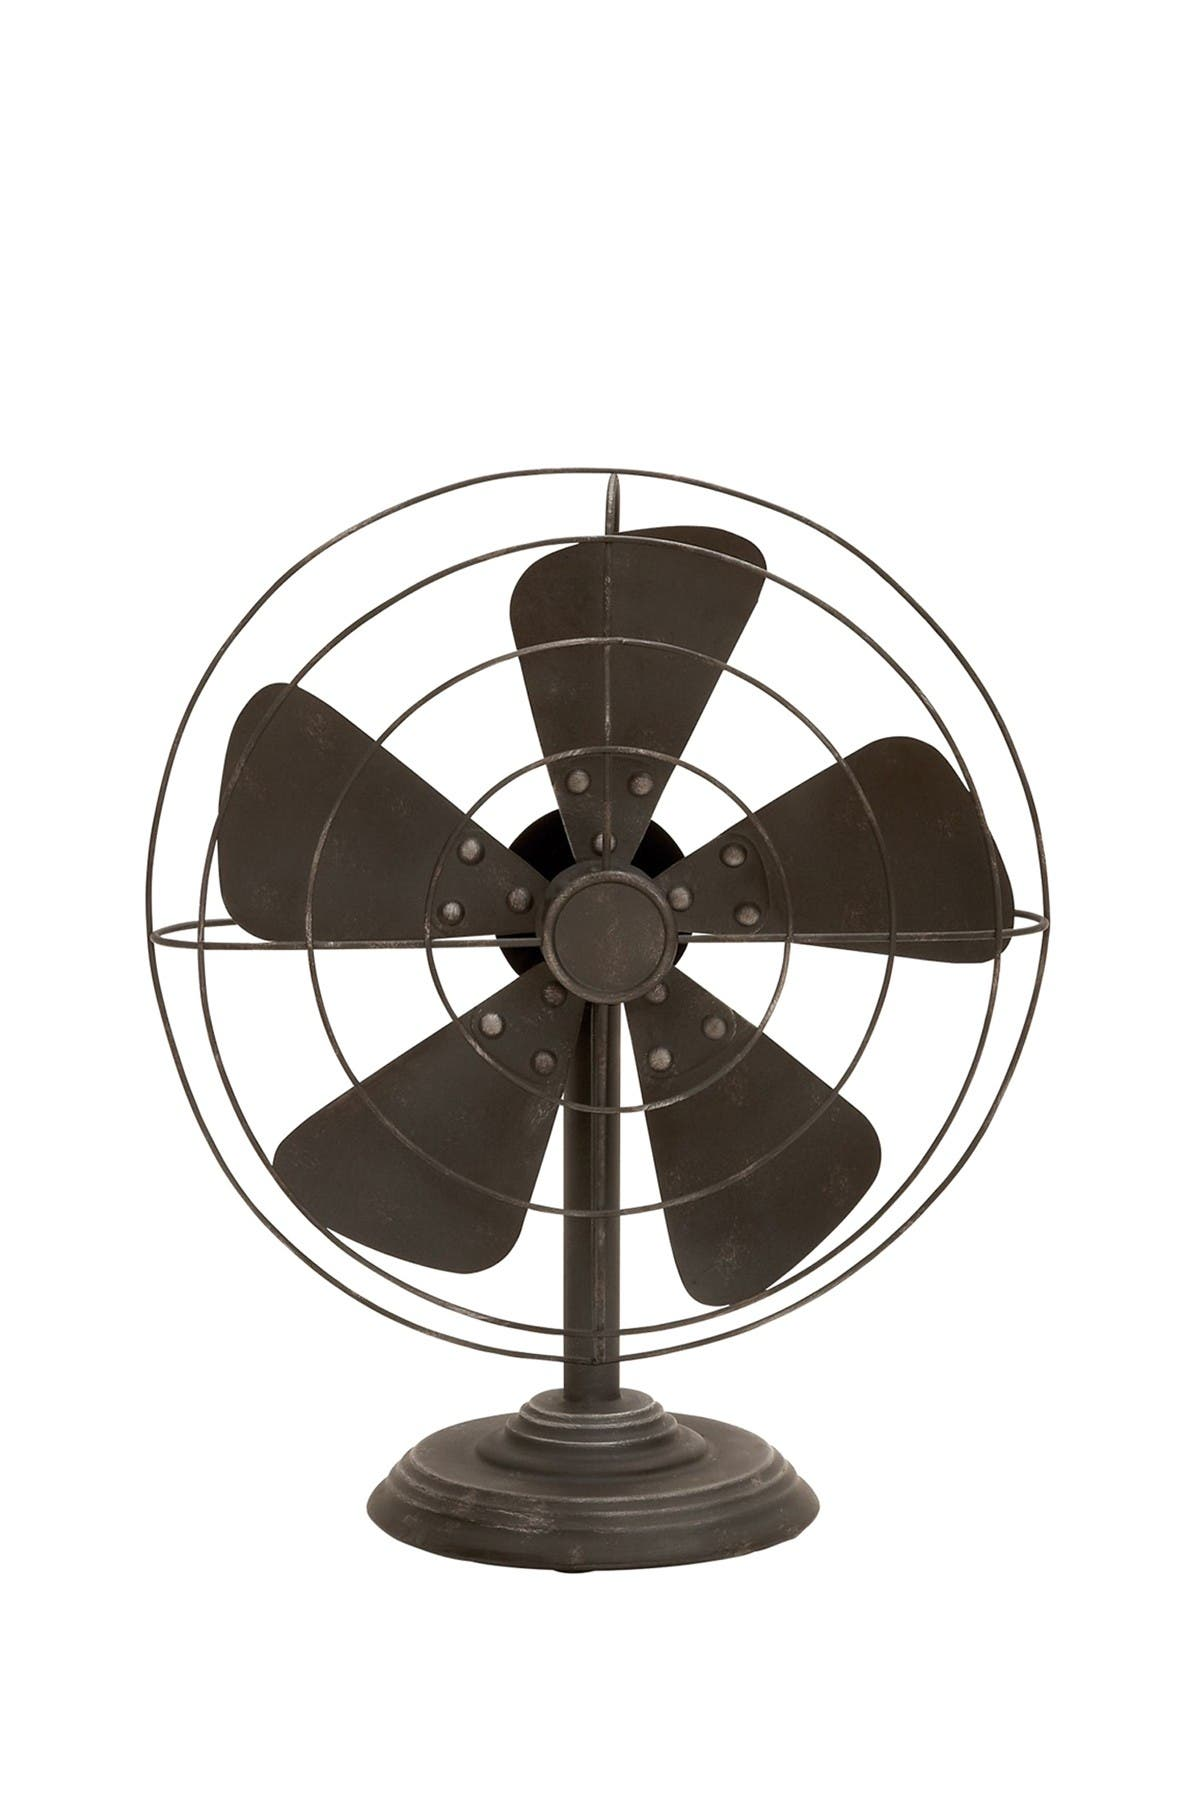 Image of Willow Row Black Antique Decorative Iron Fan Table Decor